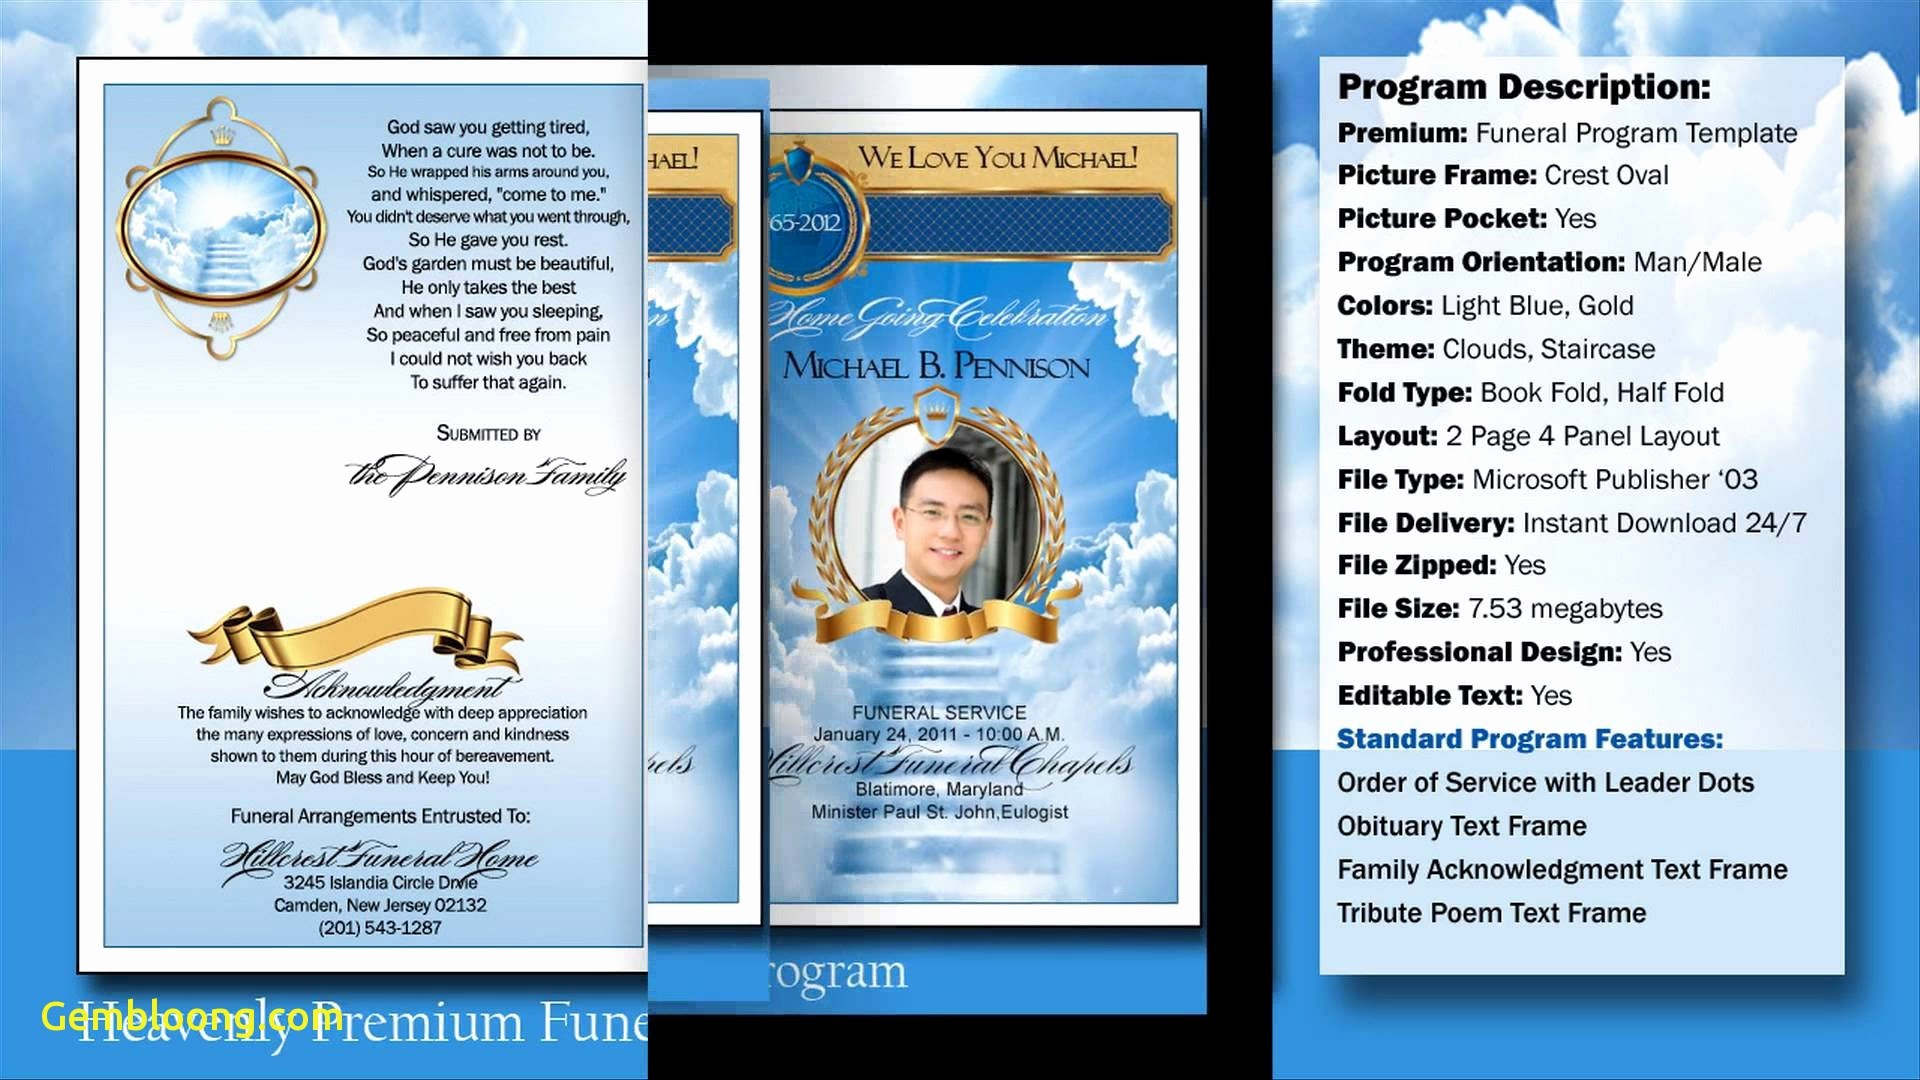 Funeral Program Template Word 2010 Best Of Free Funeral Program Template Microsoft Word